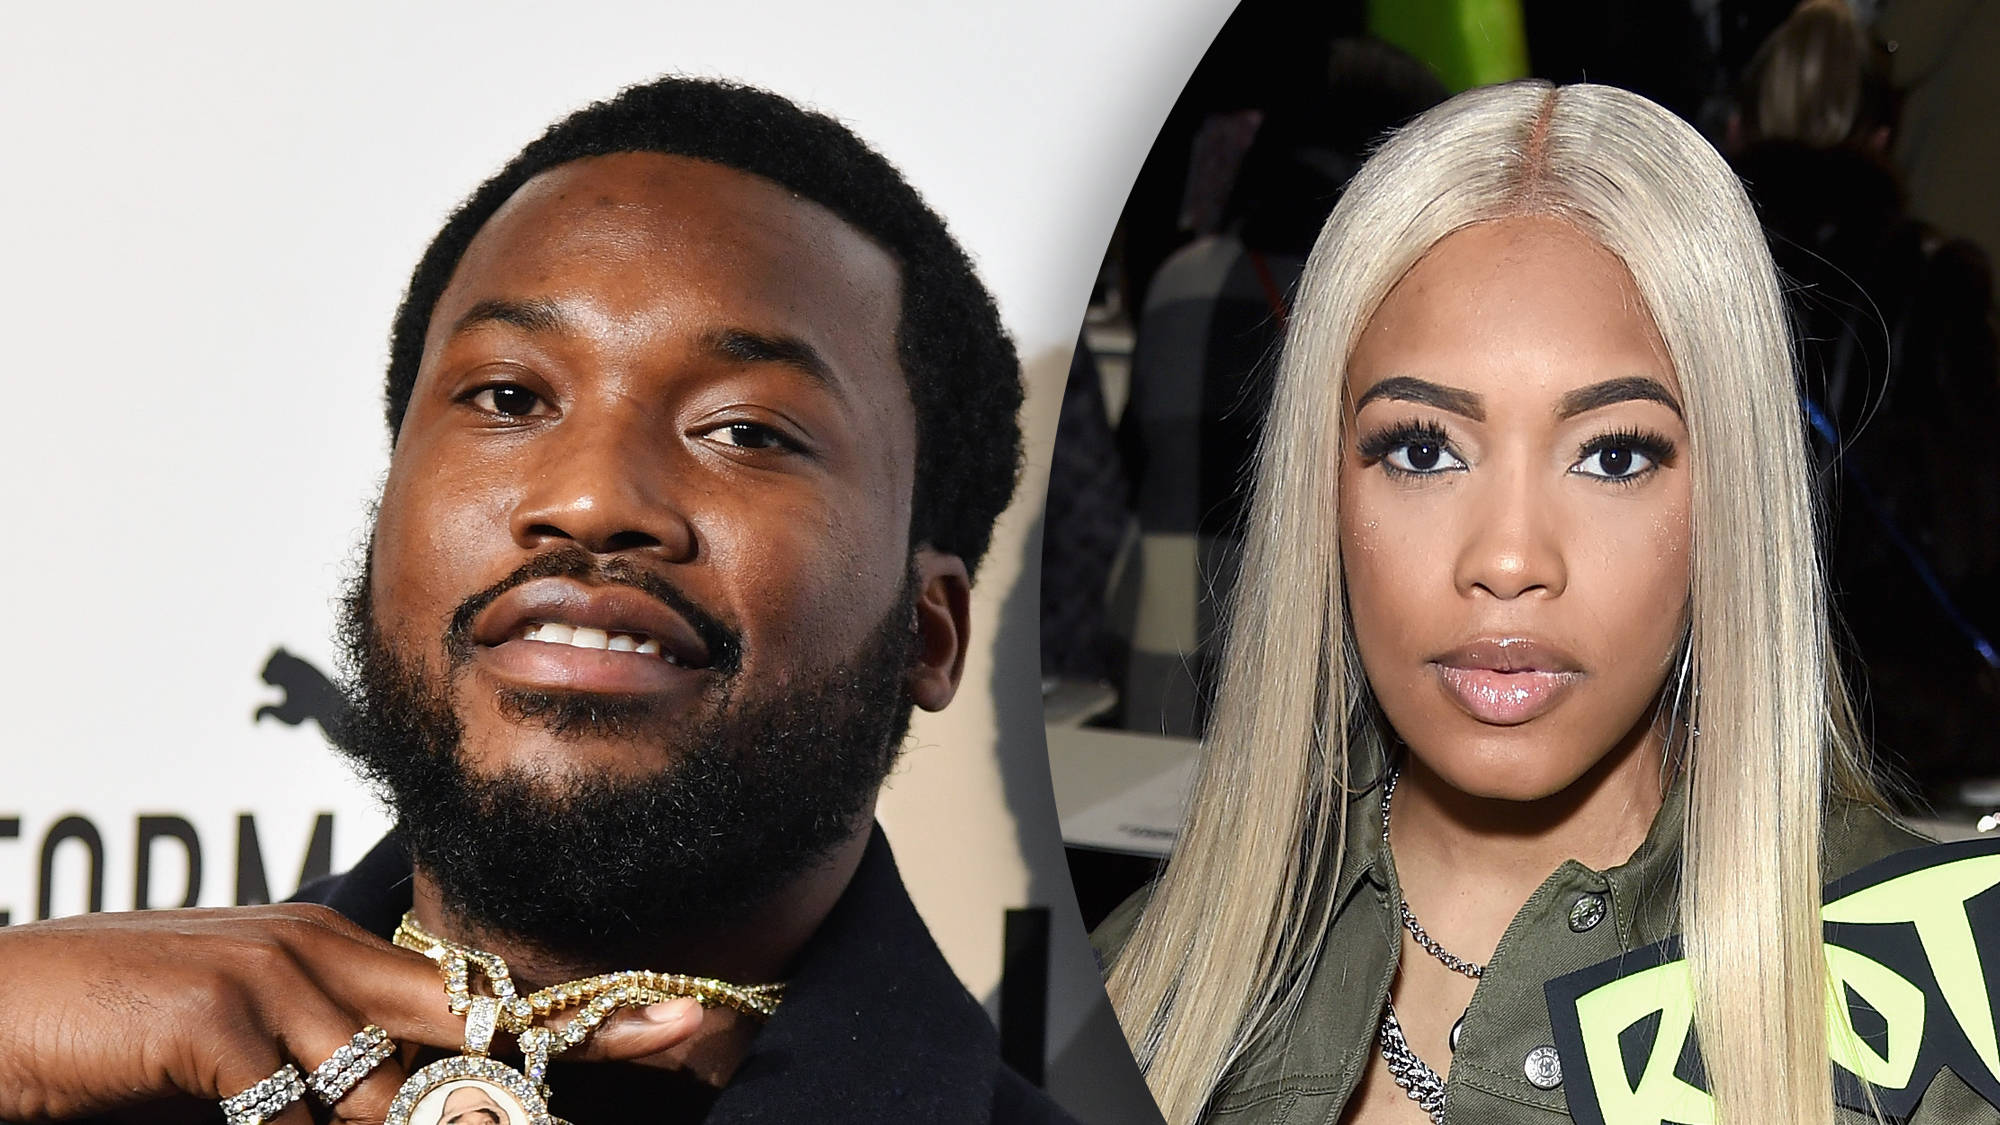 Image result for meek mill and milan harris images